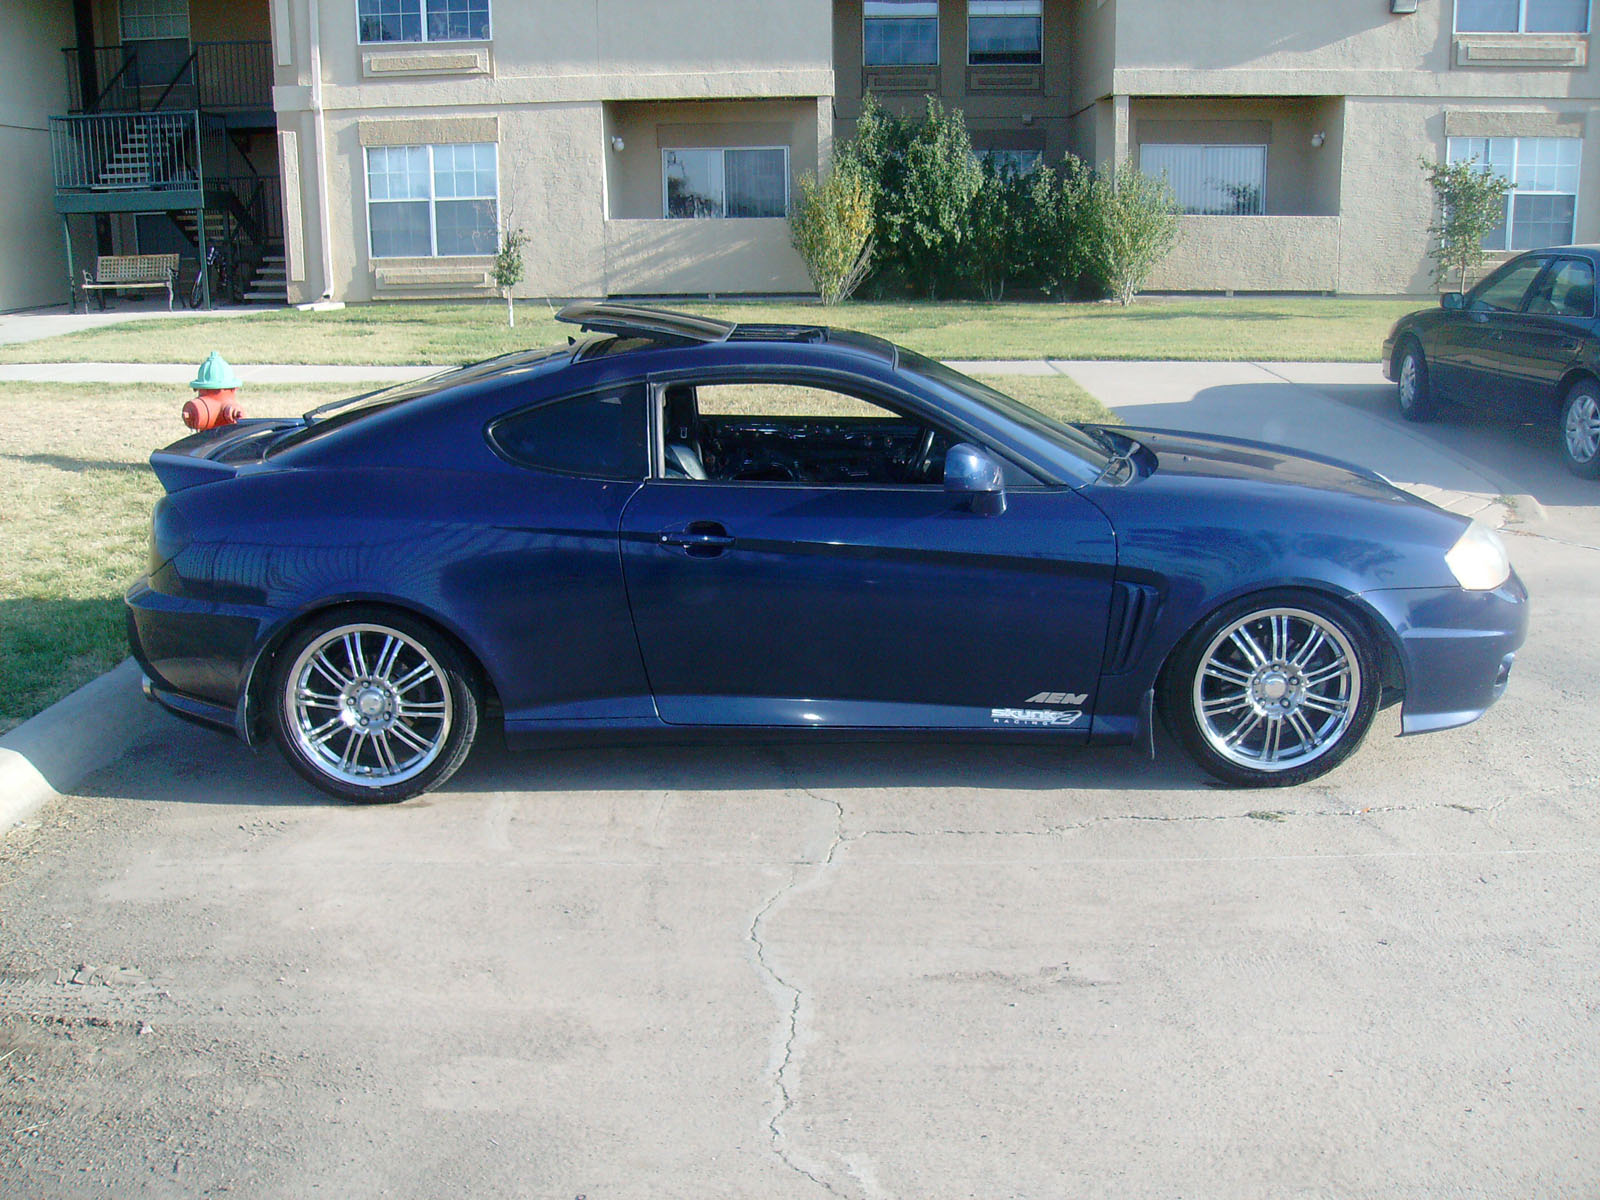 2003 hyundai tiburon gt for sale guymon oklahoma. Black Bedroom Furniture Sets. Home Design Ideas